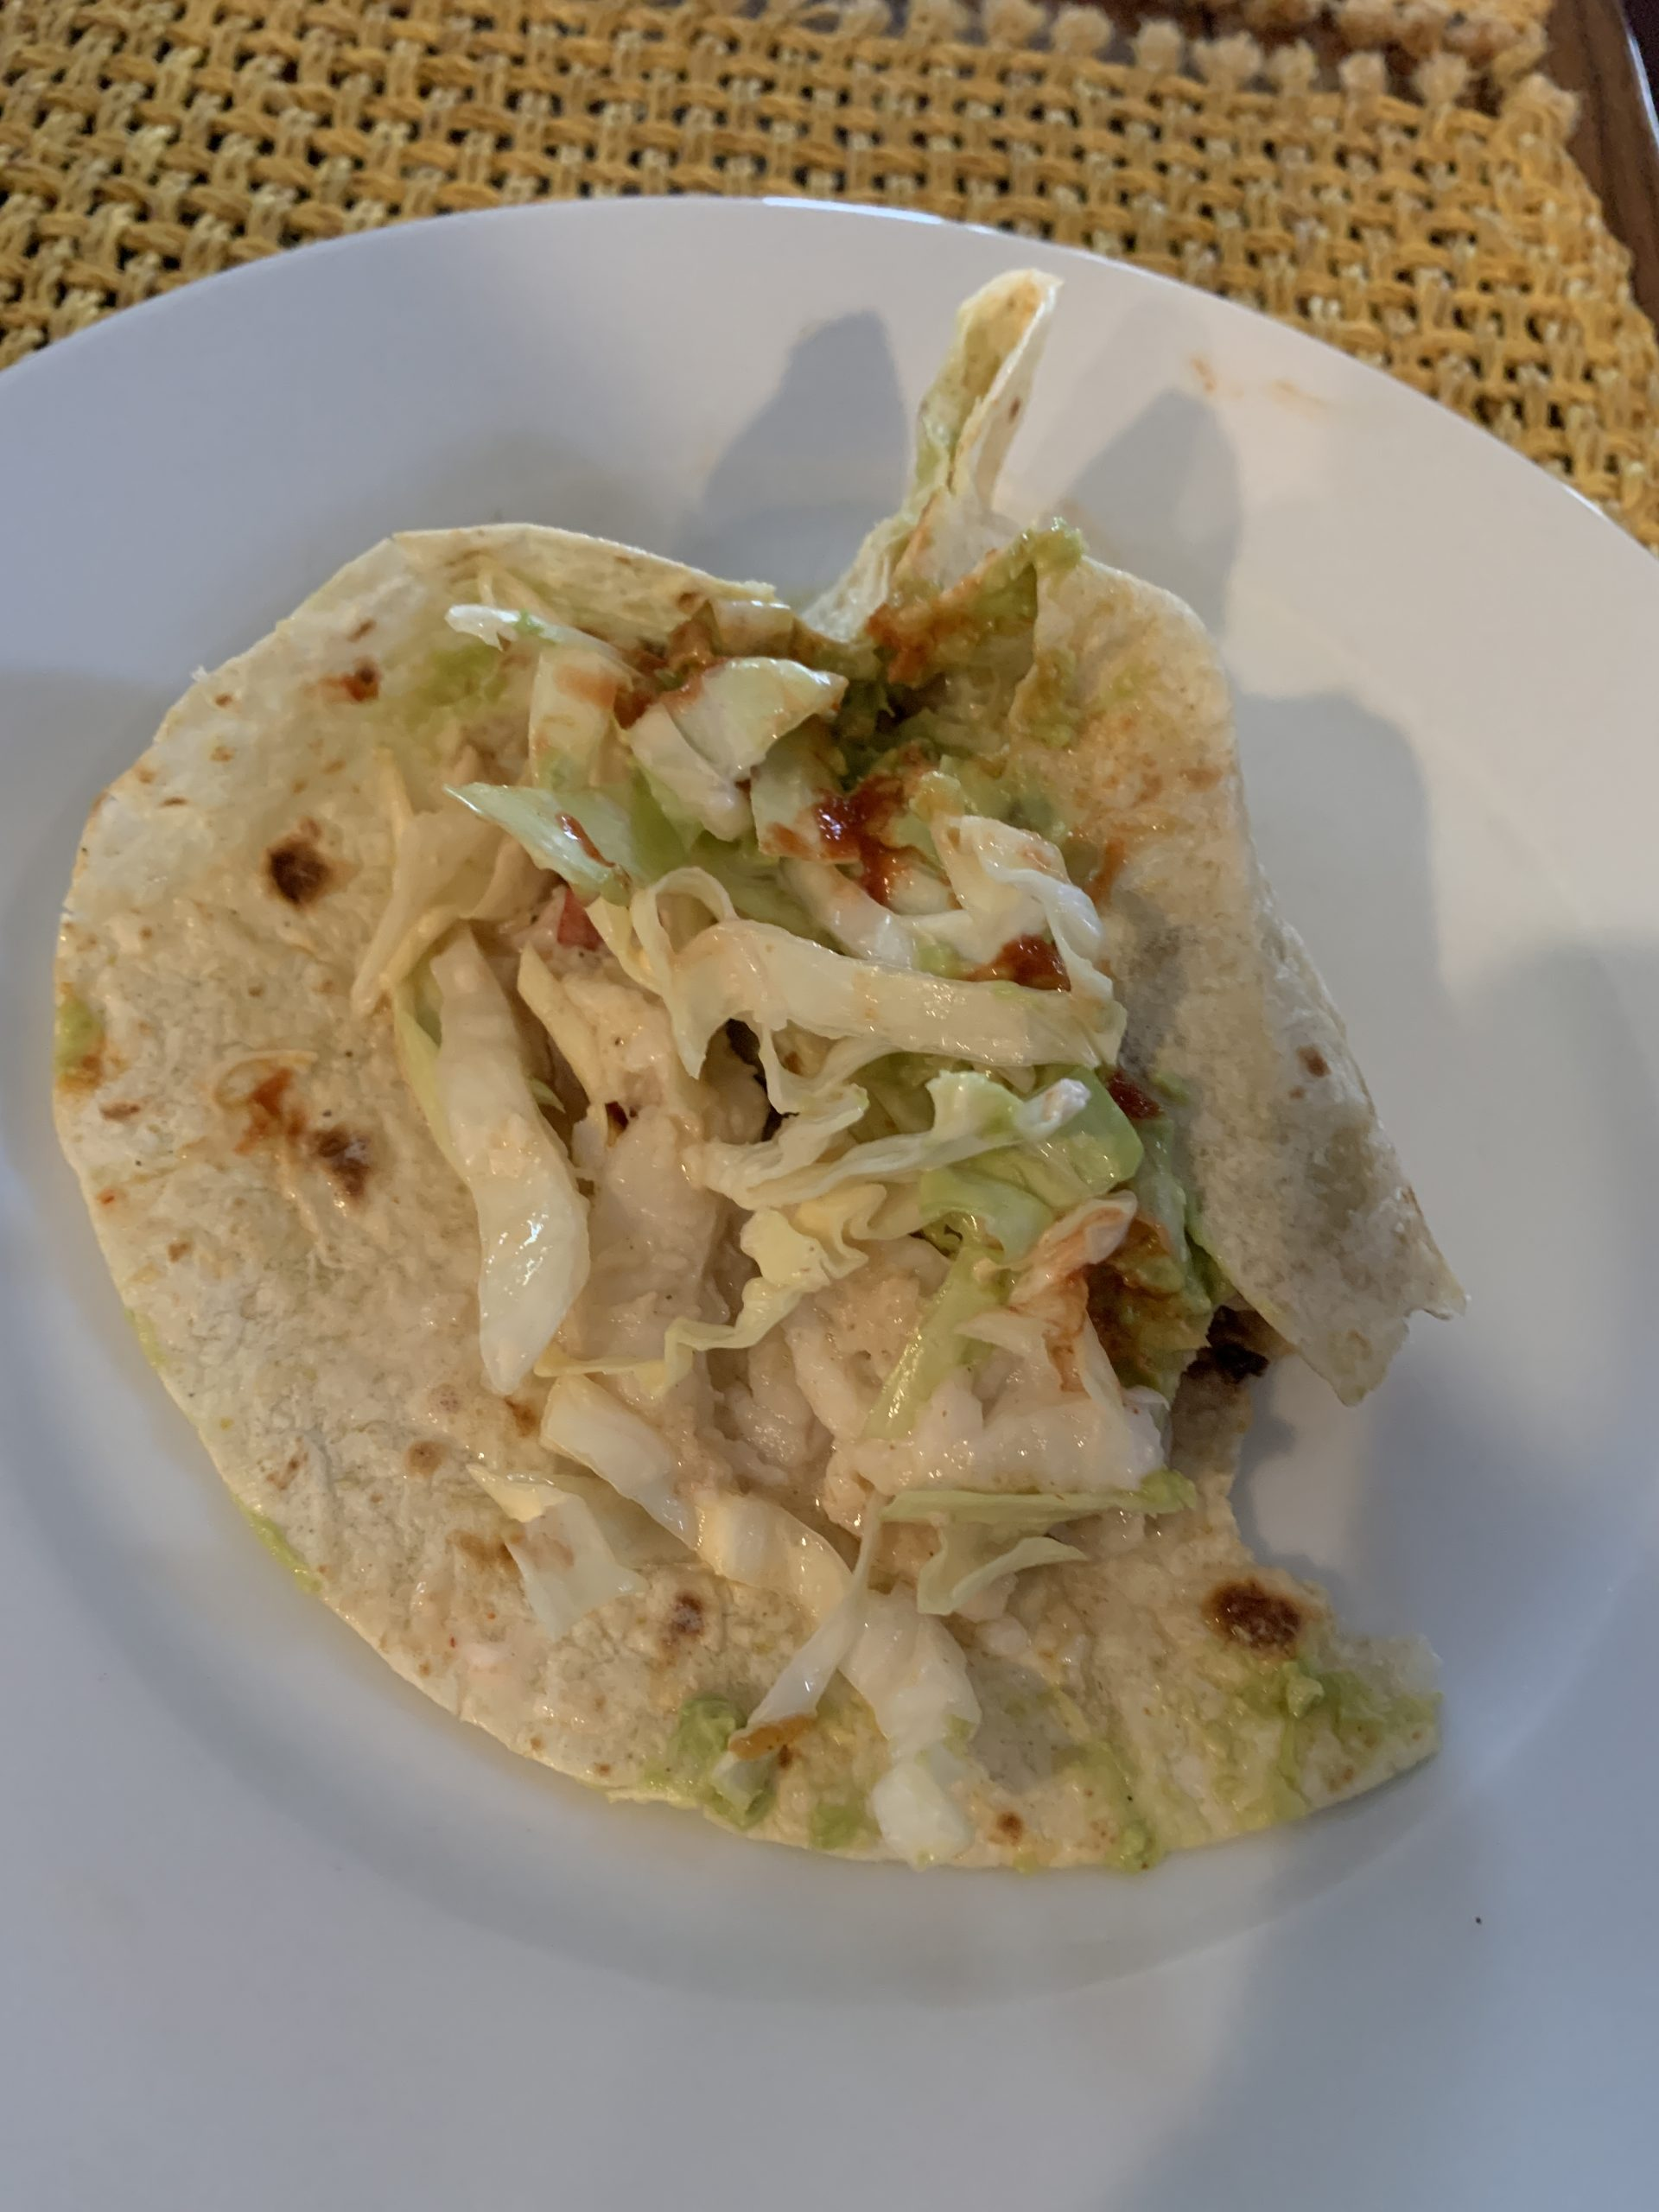 Day 12. Fish Burritos with Cabbage Slaw